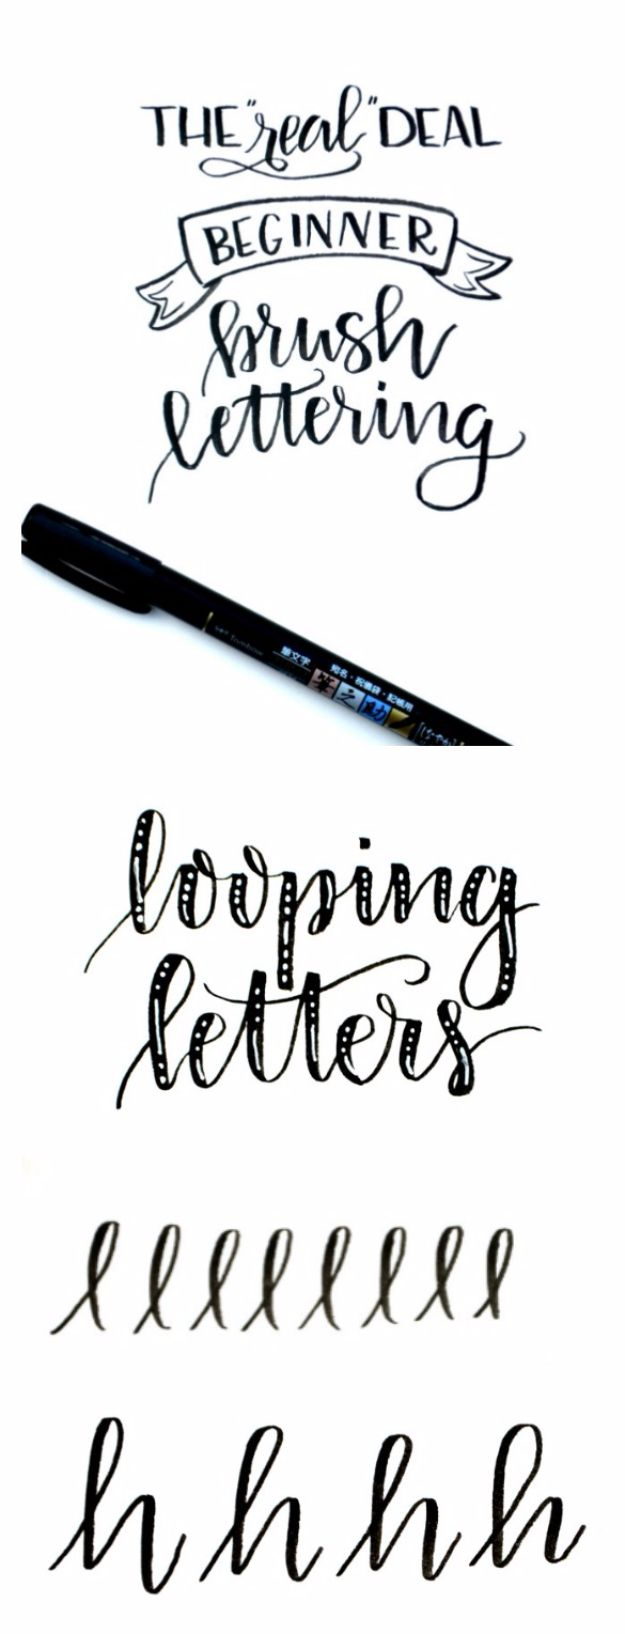 Brush Lettering Tutorials - Looping Letters - Simple and Fun Calligraphy Tutorial Videos - How To Paint the Alphabet in Calligraphy Handwriting with Pens, Watercolors, Adobe Illustrator and Sharpie